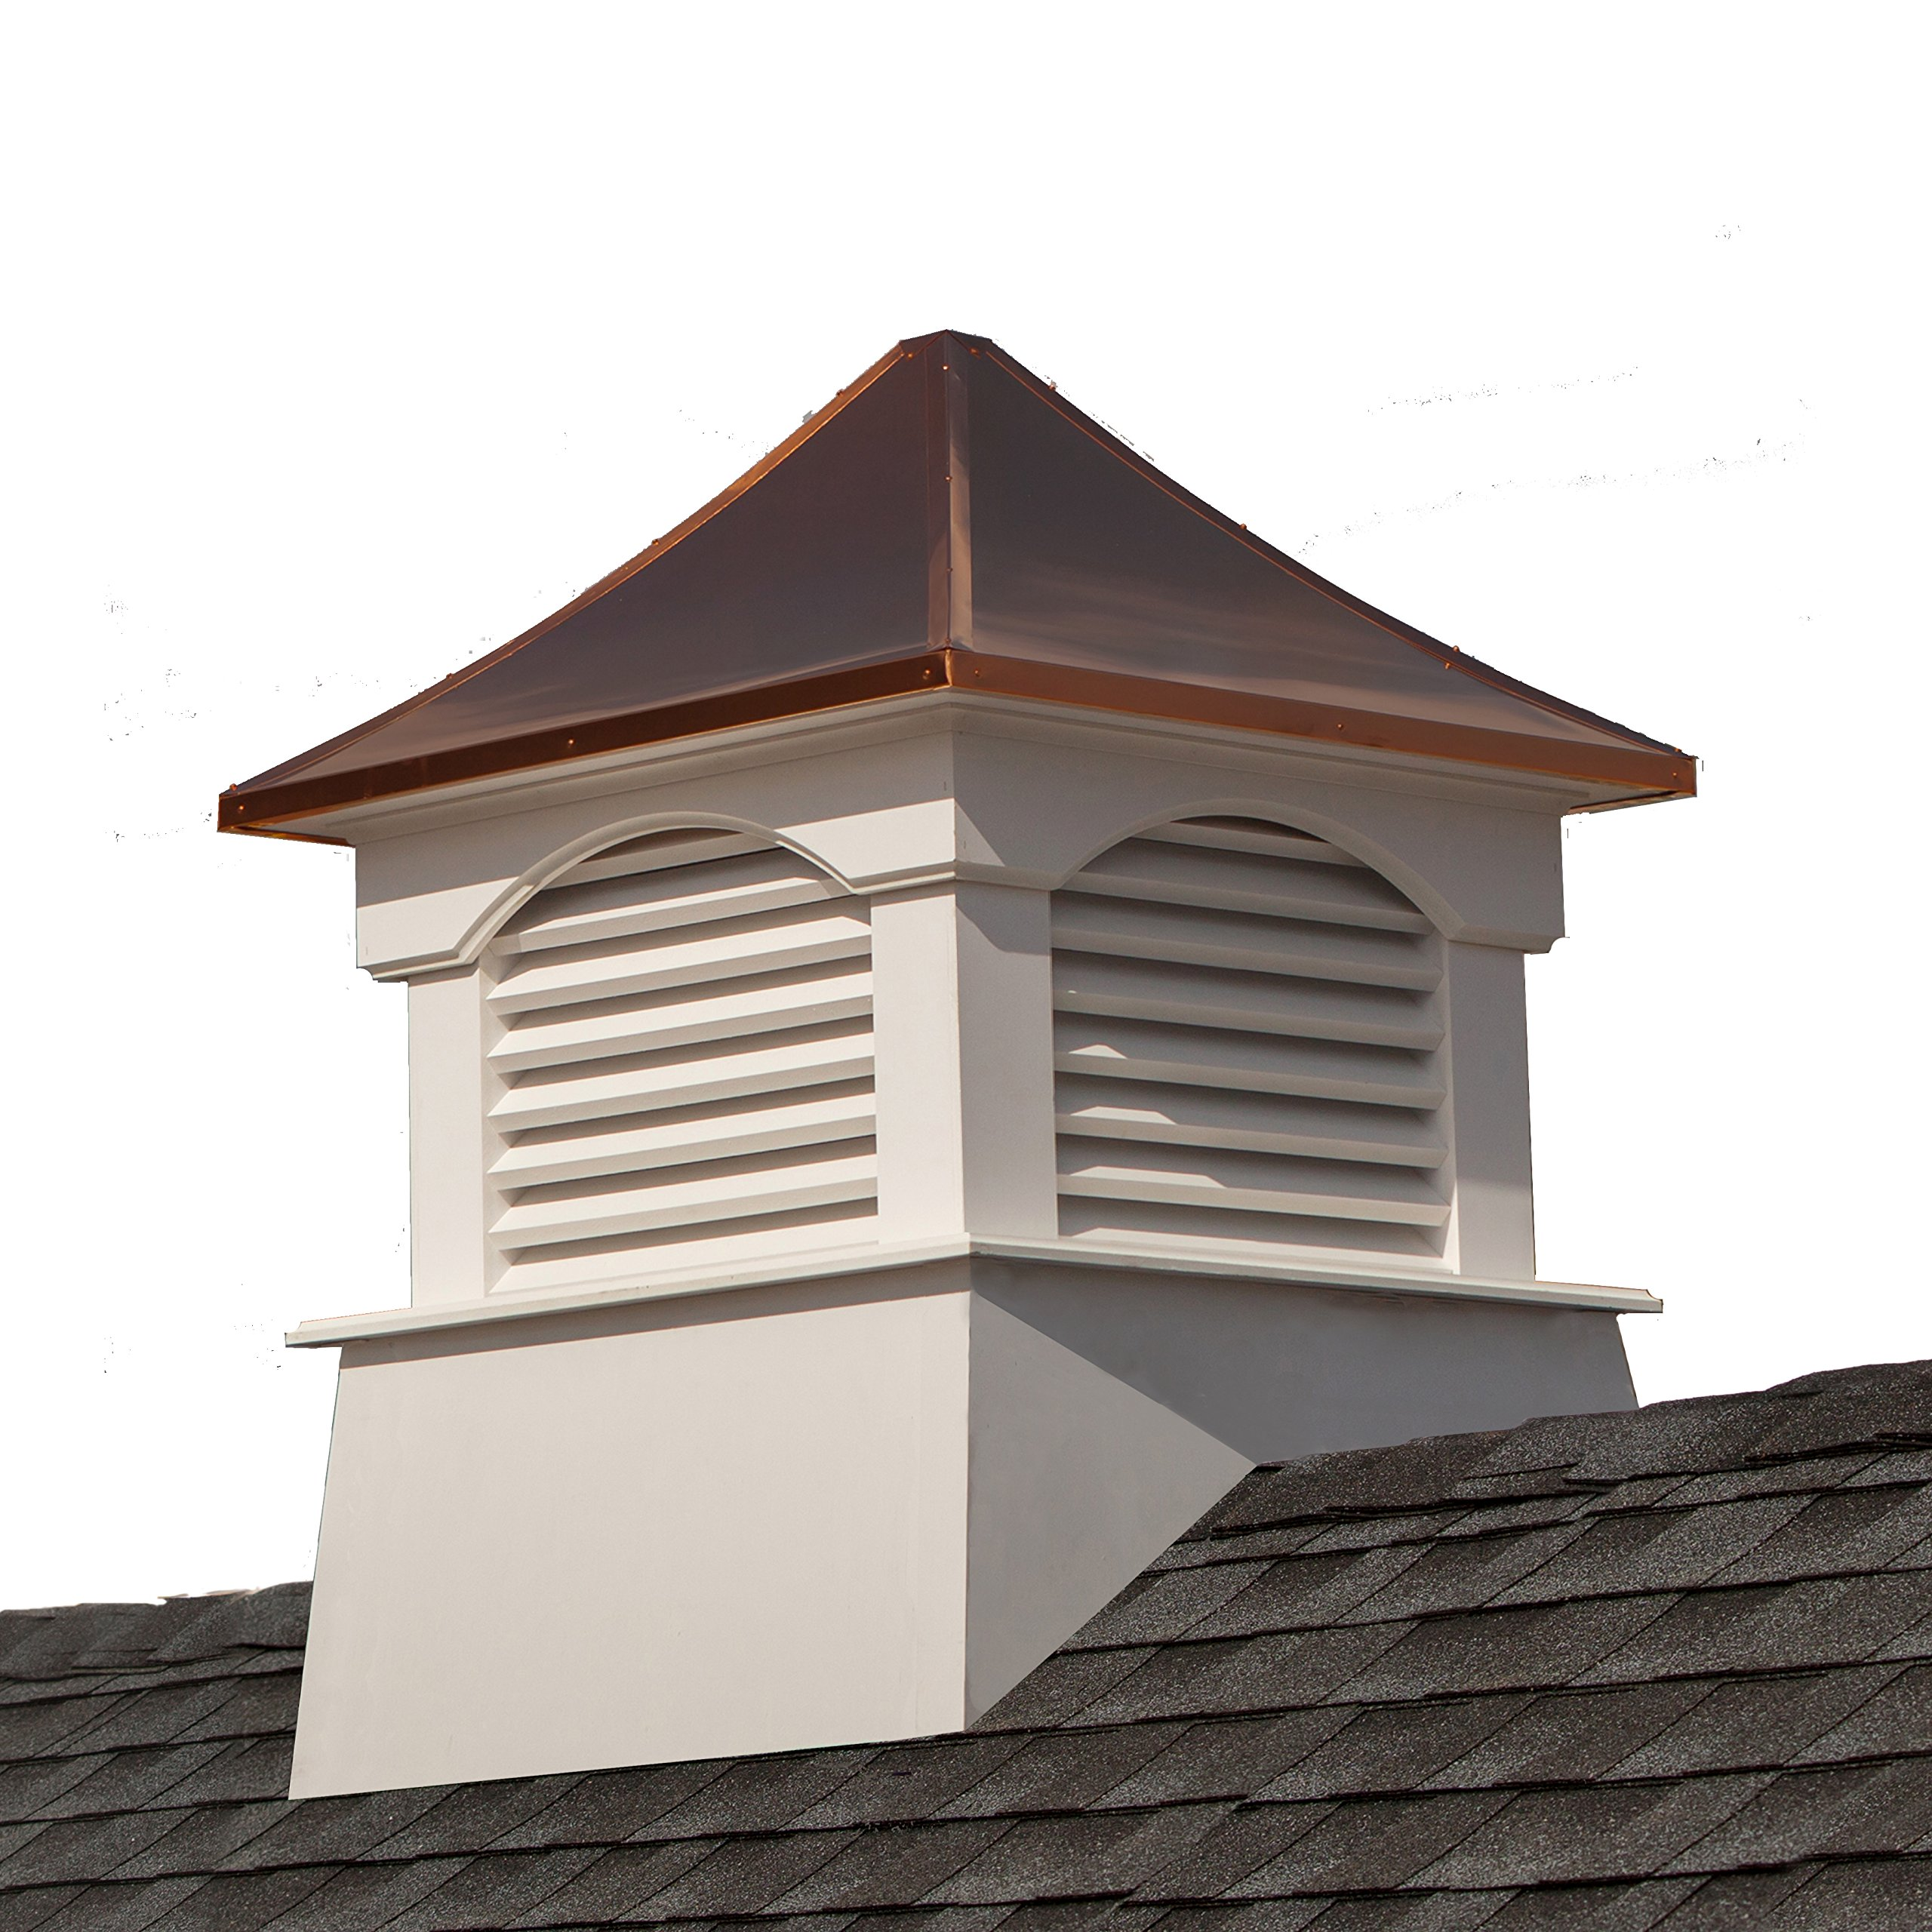 Good Directions Vinyl Coventry Louvered Cupola with Pure Copper Roof,  Maintenance Free Solid Cellular PVC Vinyl, 42'' x 57'', Reinforced Roof and Louvers, Cupolas by Good Directions